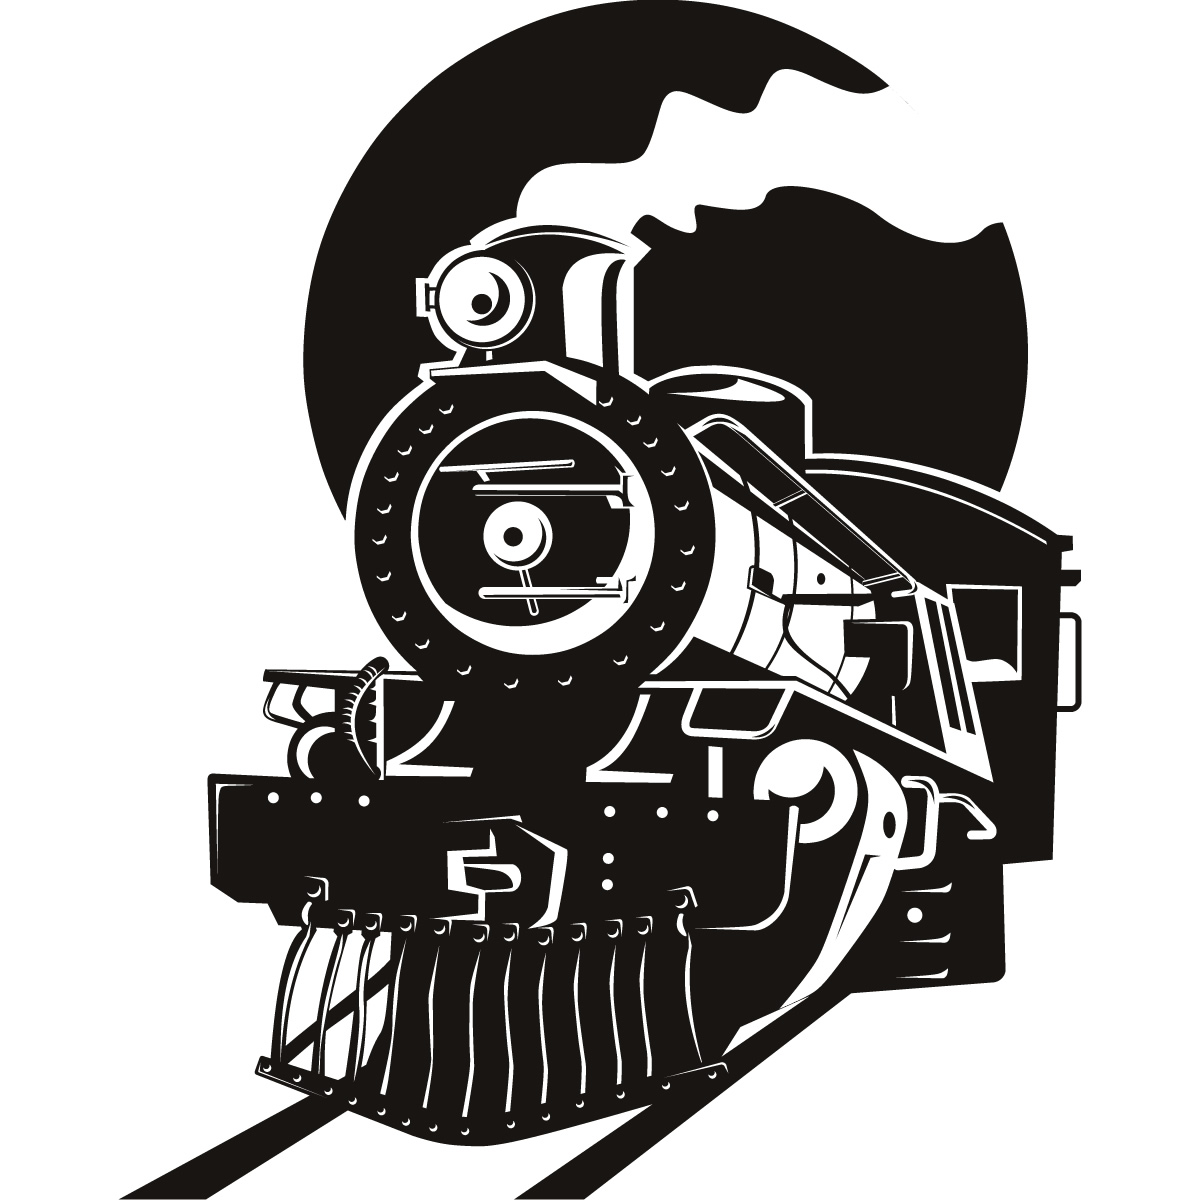 Steam clipart steam locomotive Silhouette locomotive locomotive Locomotive Silhouette